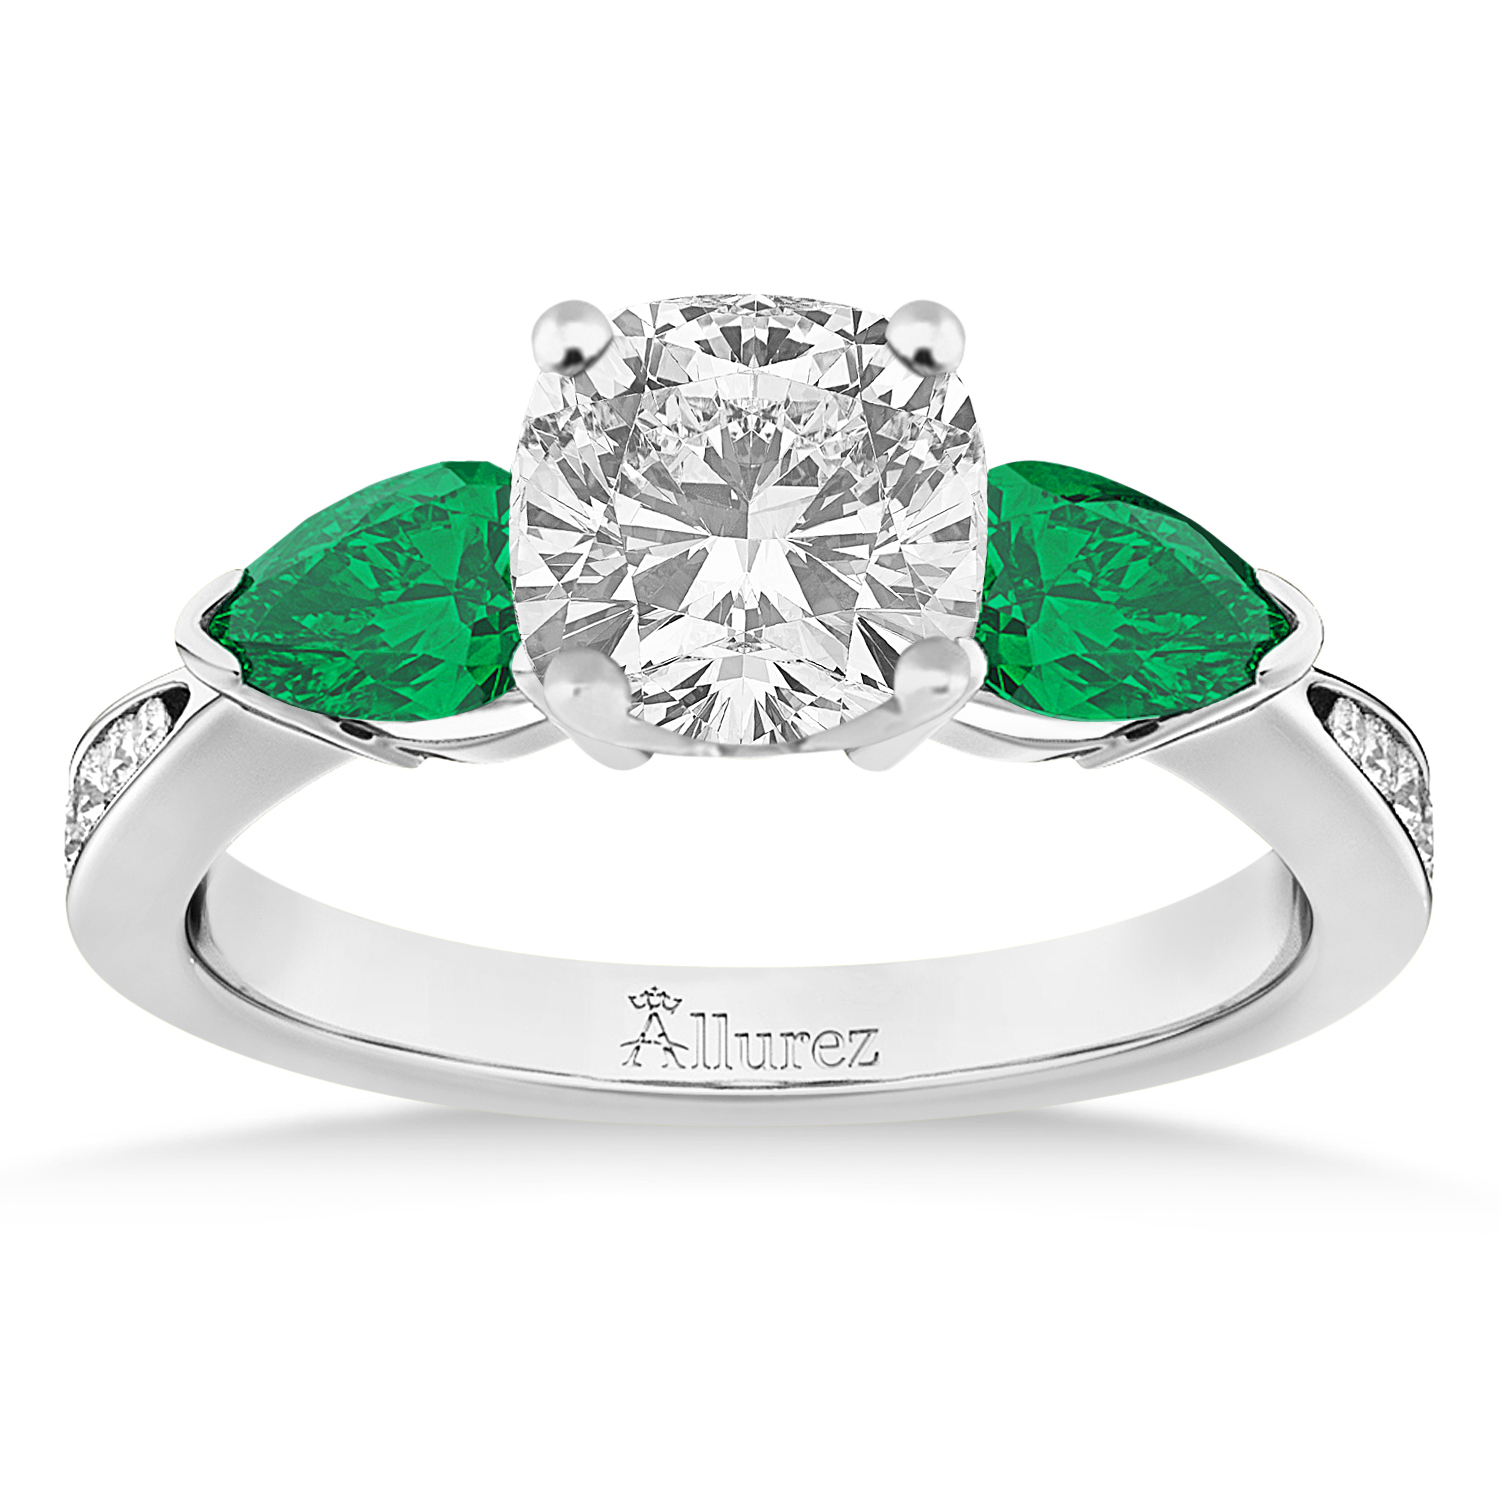 Cushion Diamond & Pear Green Emerald Engagement Ring 18k White Gold (1.29ct)